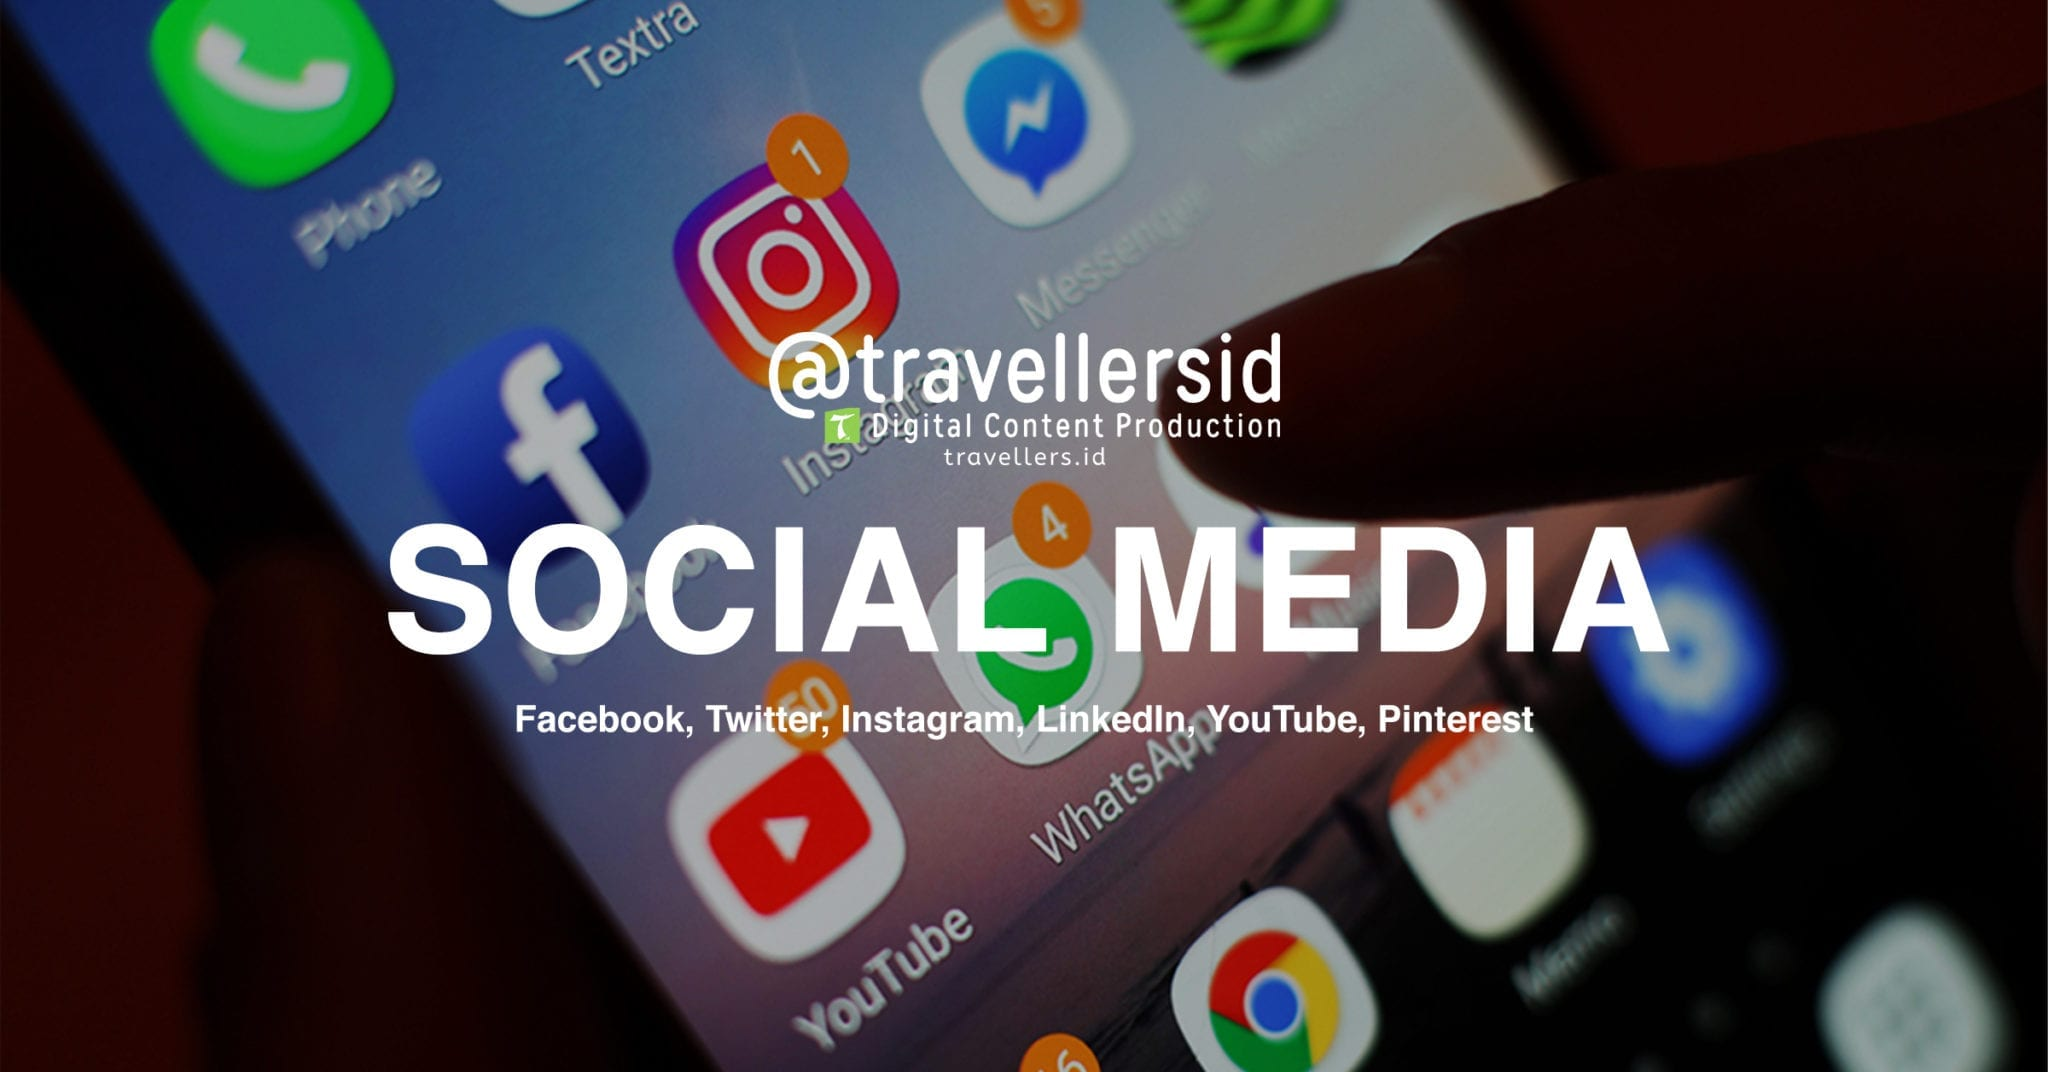 @TravellersID Social Media Services